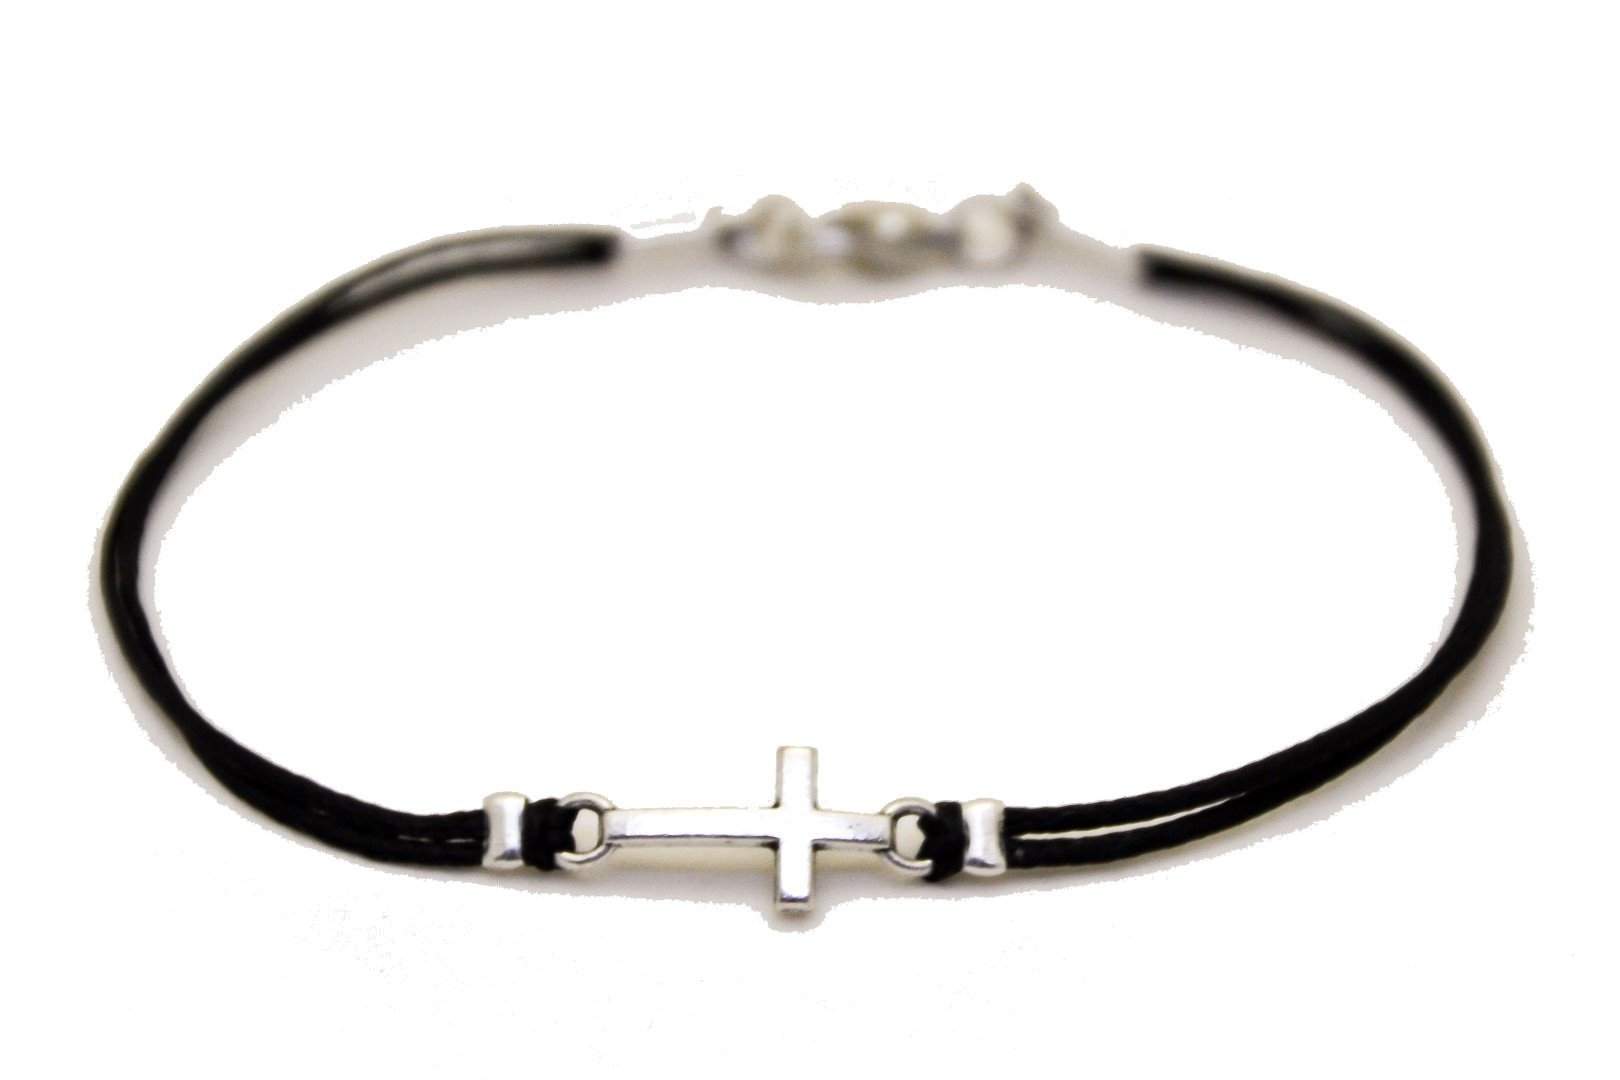 Cross bracelet for men, christian conformation gift, men's bracelet silver cross charm, black strand, for him, christian catholic jewelry